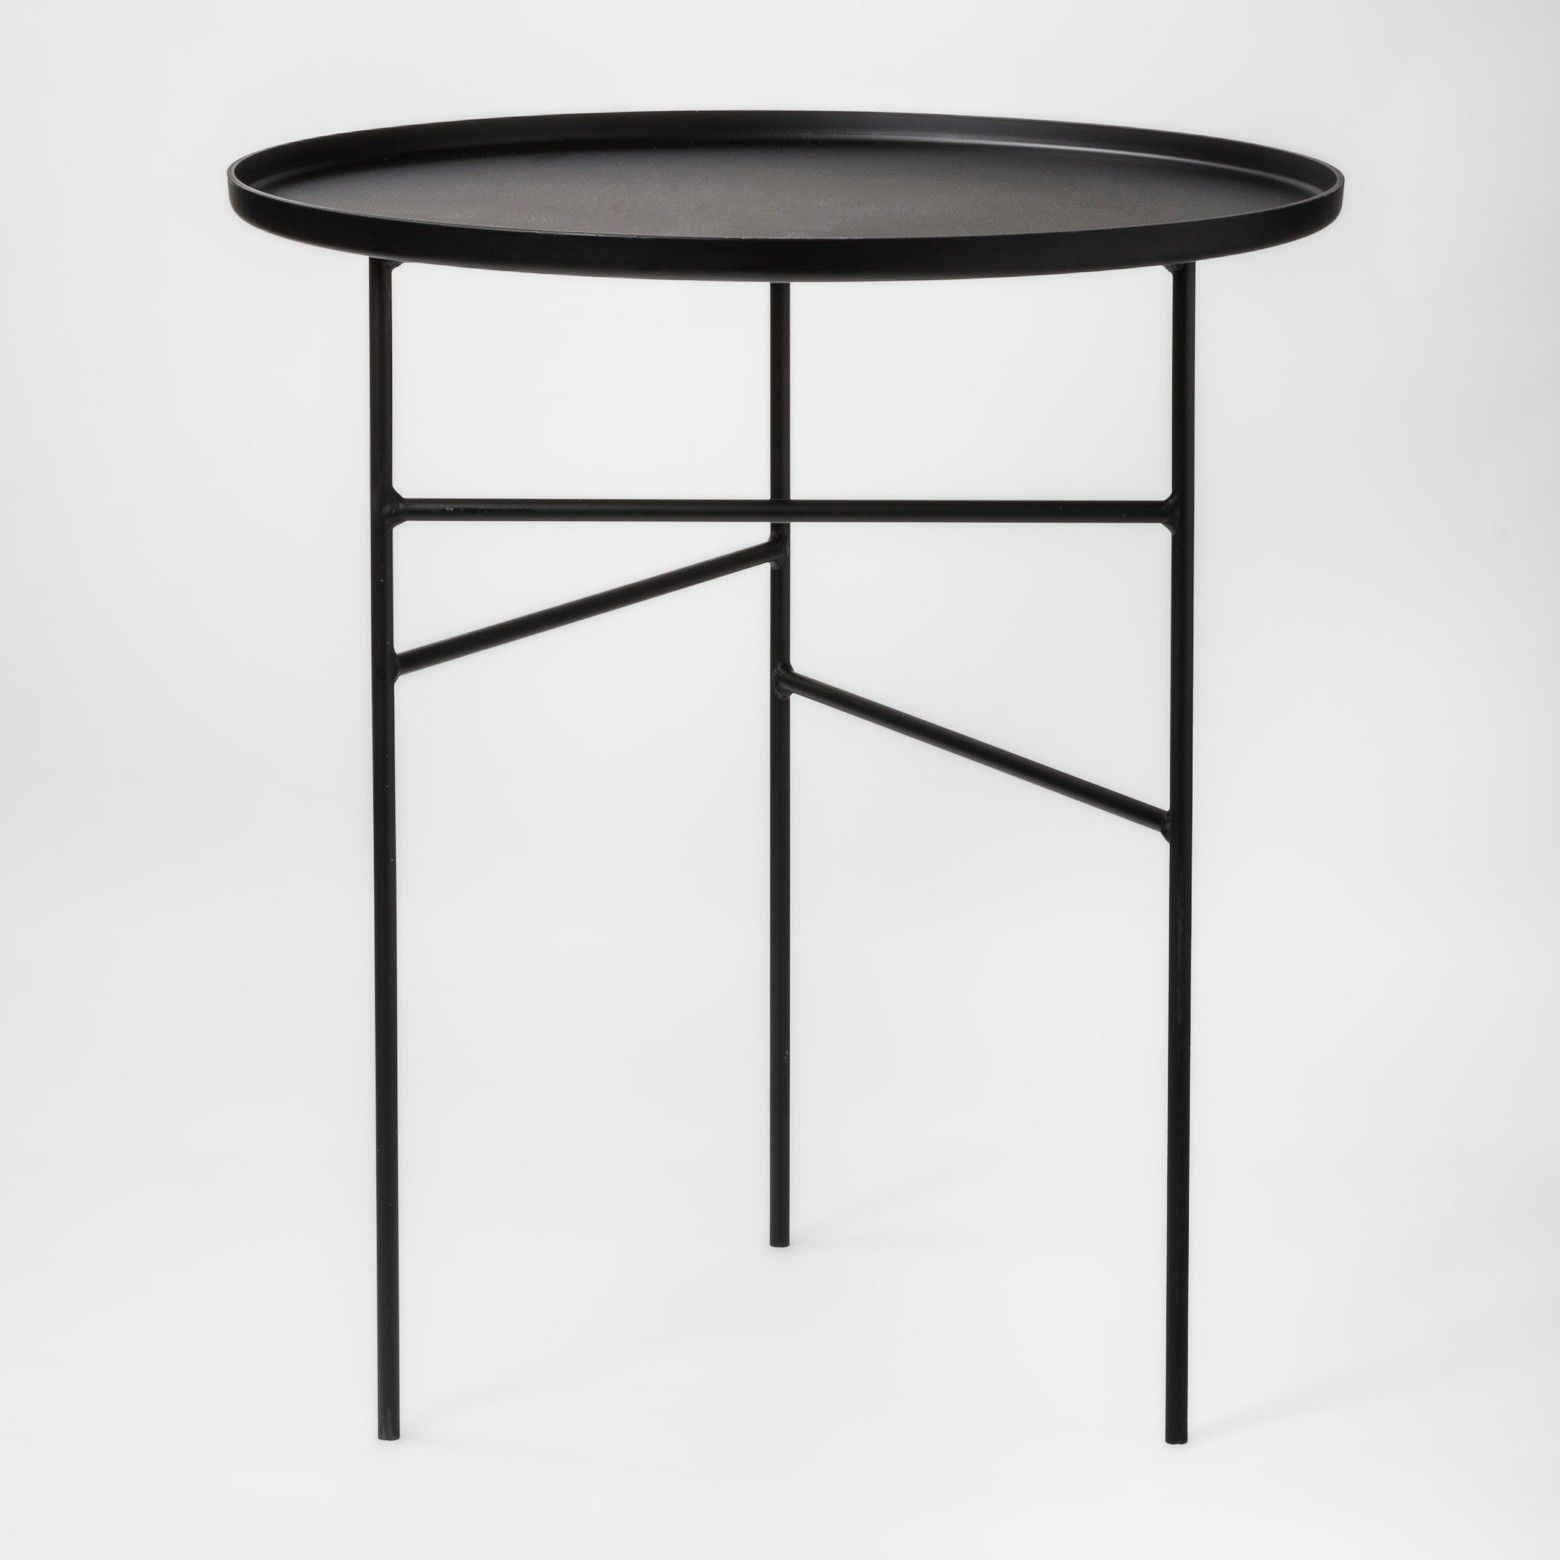 elgin accent table black project metal accents armchairs area rugs tray target rustic looking end tables beds slate west elm dining room lighting wood coffee set adjustable lamp